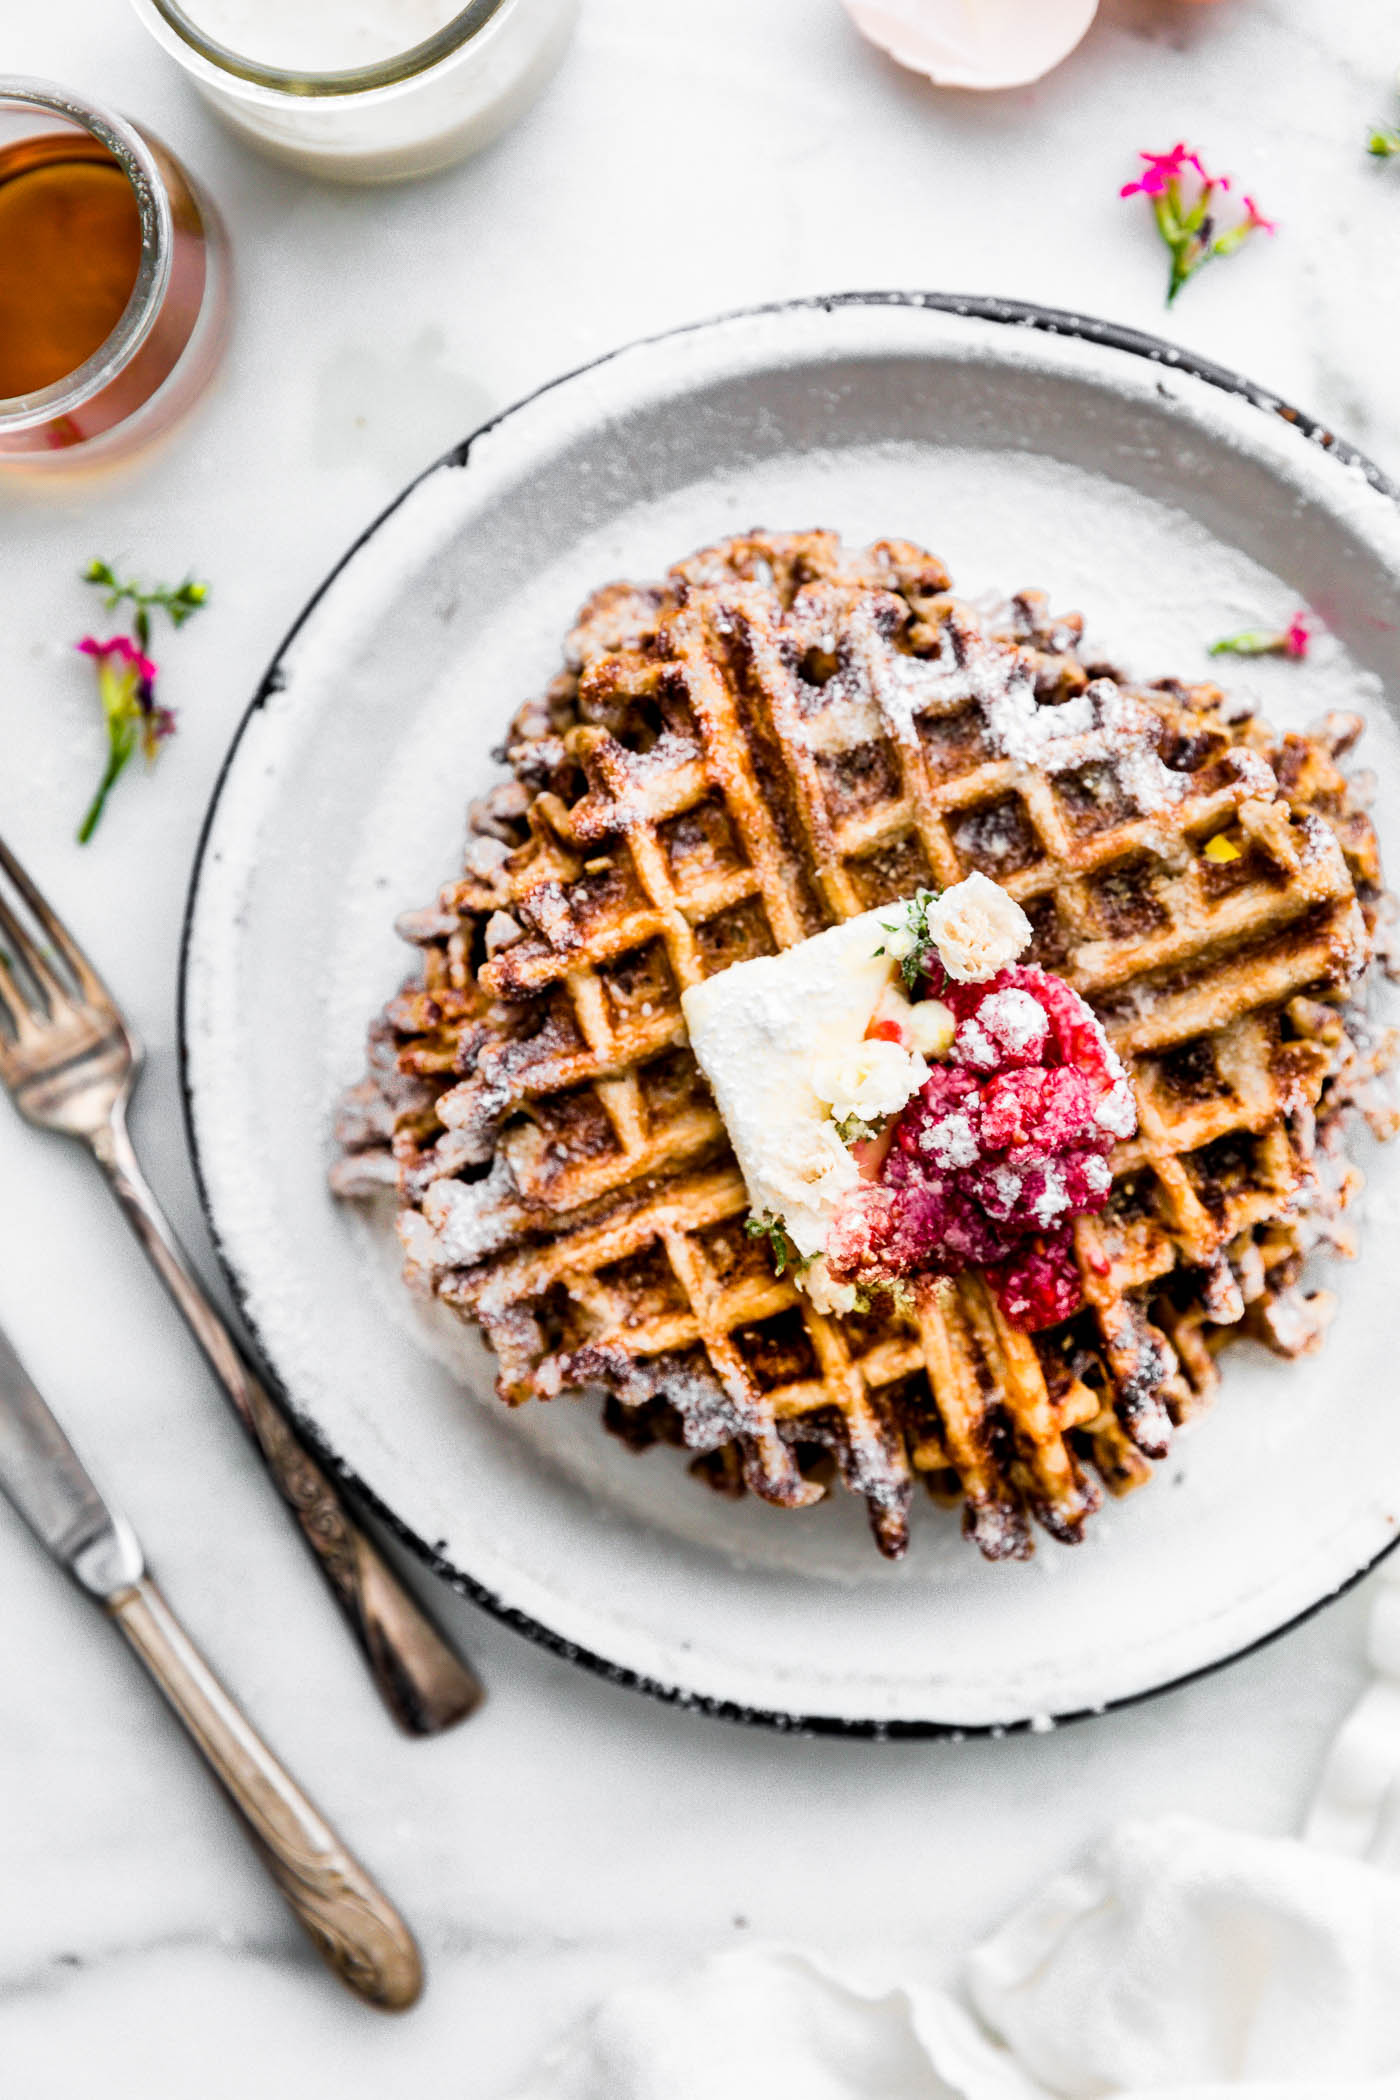 paleo waffles topped with fresh berries on a white plate